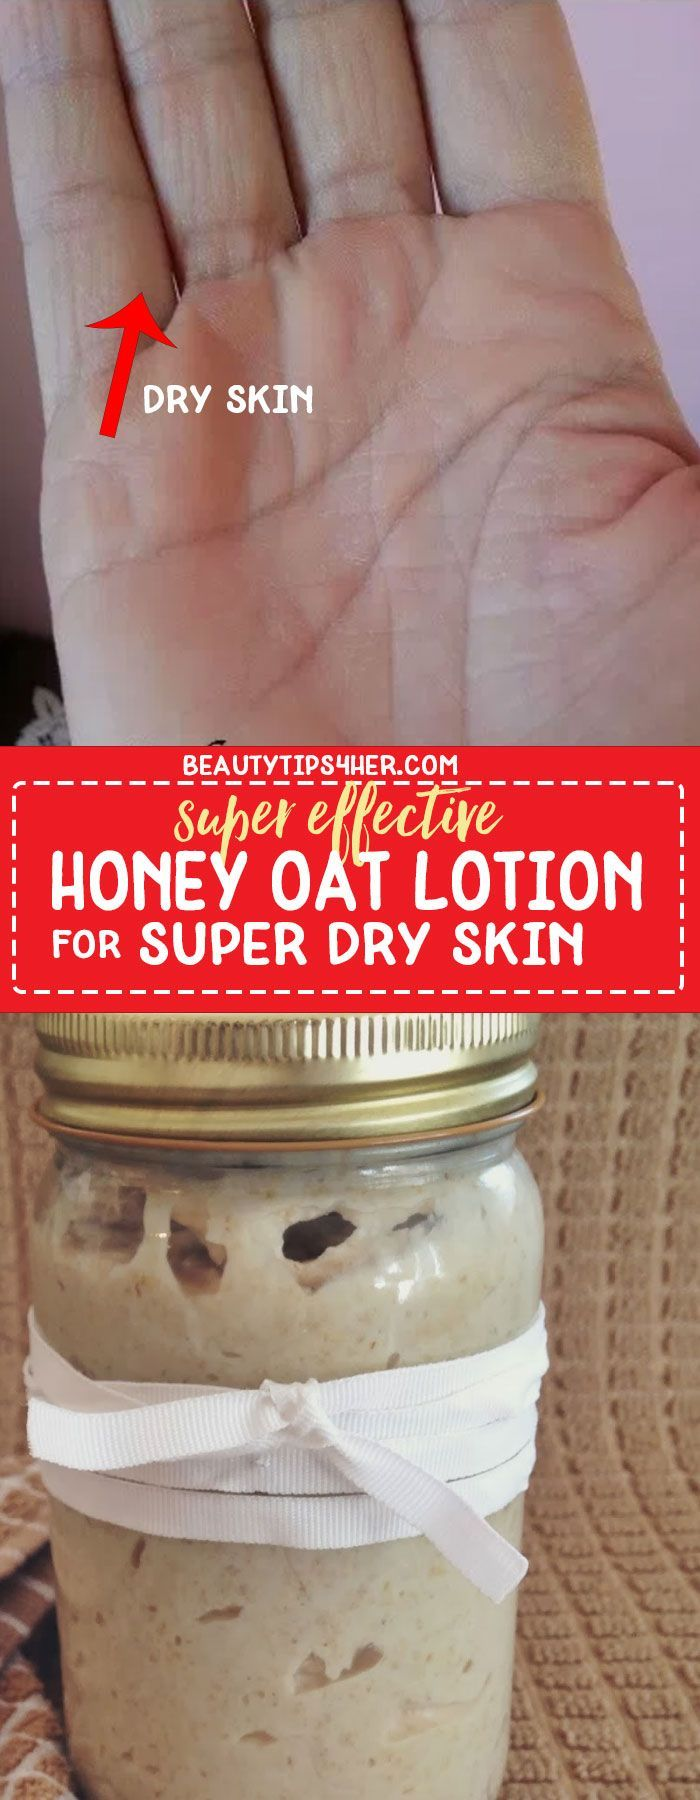 oatmeal lotion for dry skin